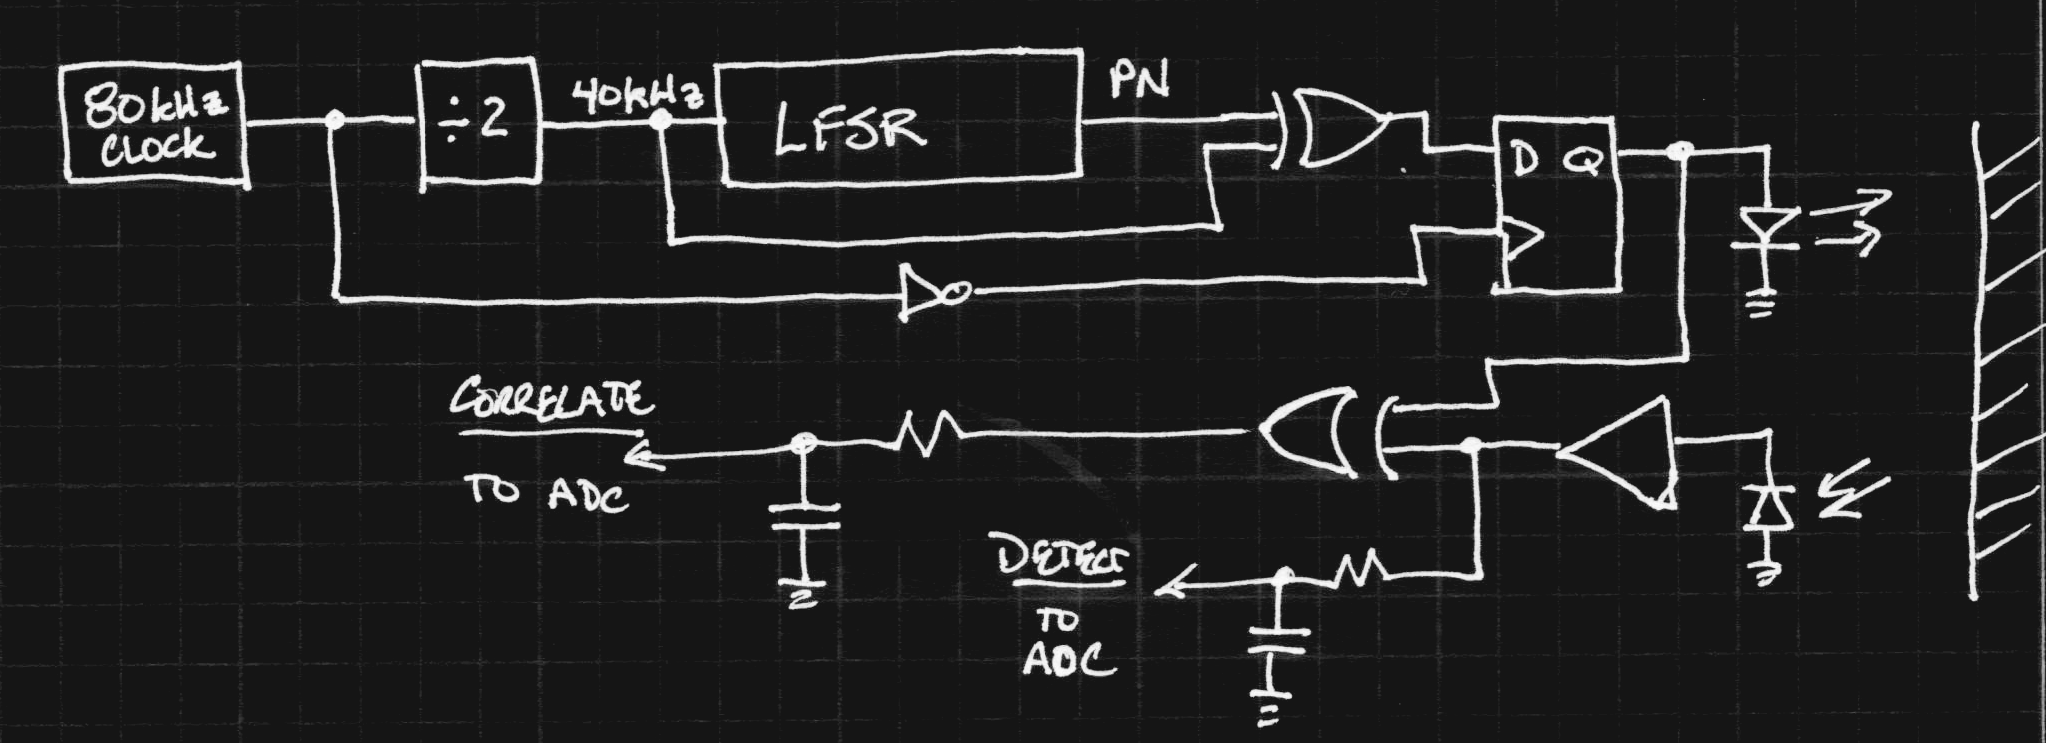 Spread Spectrum Ir Proximity Sensor Module Audio Analyzer Circuit Led 03 120x120 The Top Of Diagram Is Transmit Chain An 80 Khz Clock Divided By Two To Yield 40 Fed Into A Linear Feedback Shift